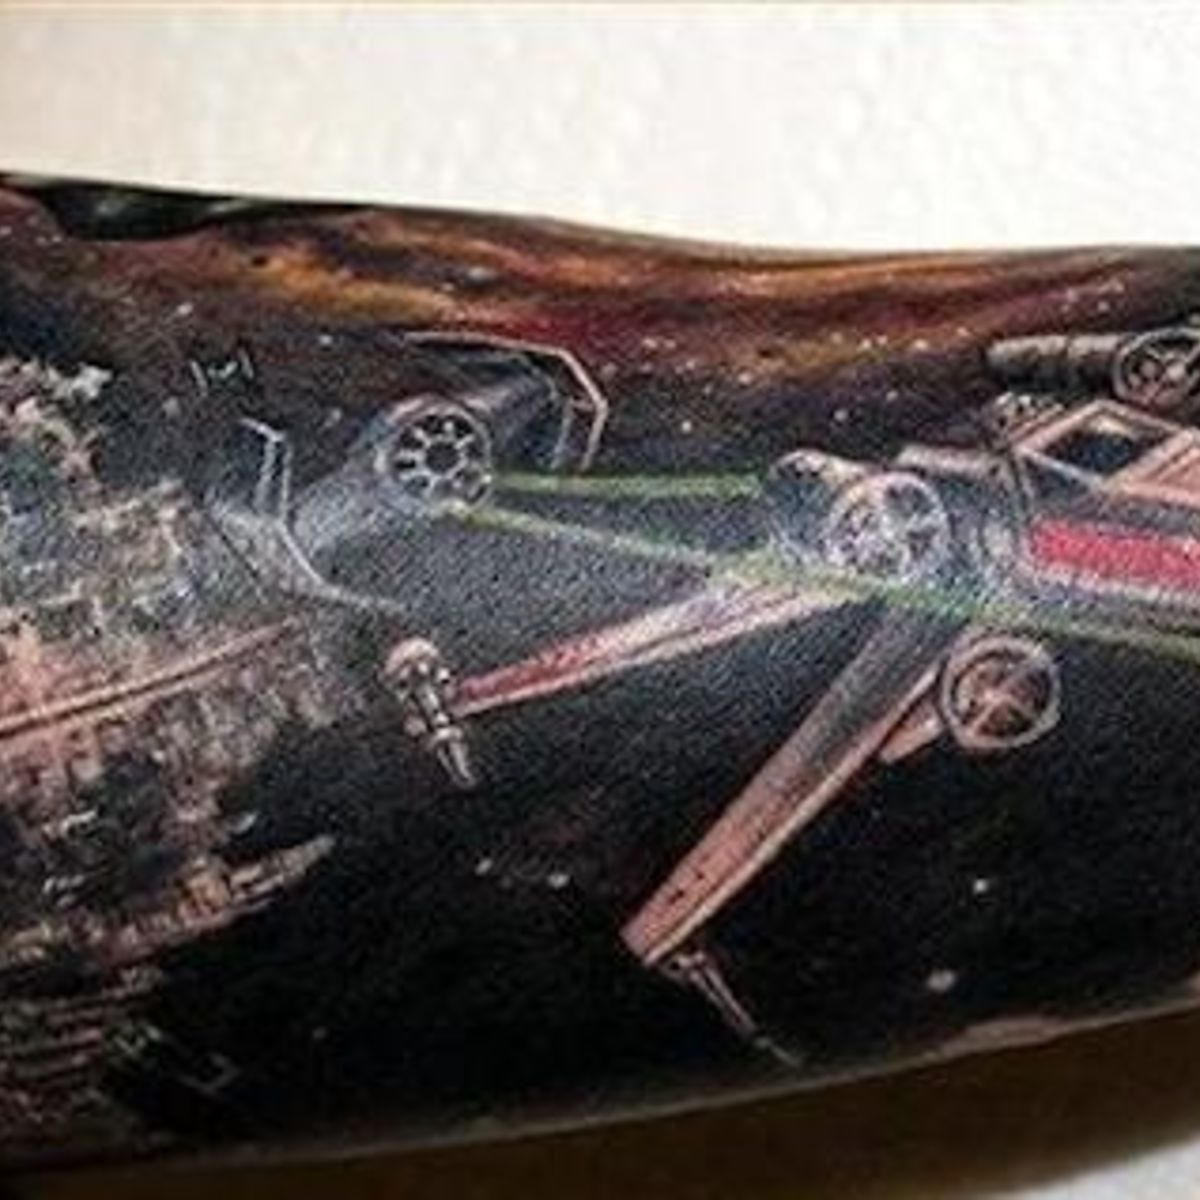 star-wars-sleeve-tattoos-boba-fett-pin-up-and-x-wing-battle-1.jpg